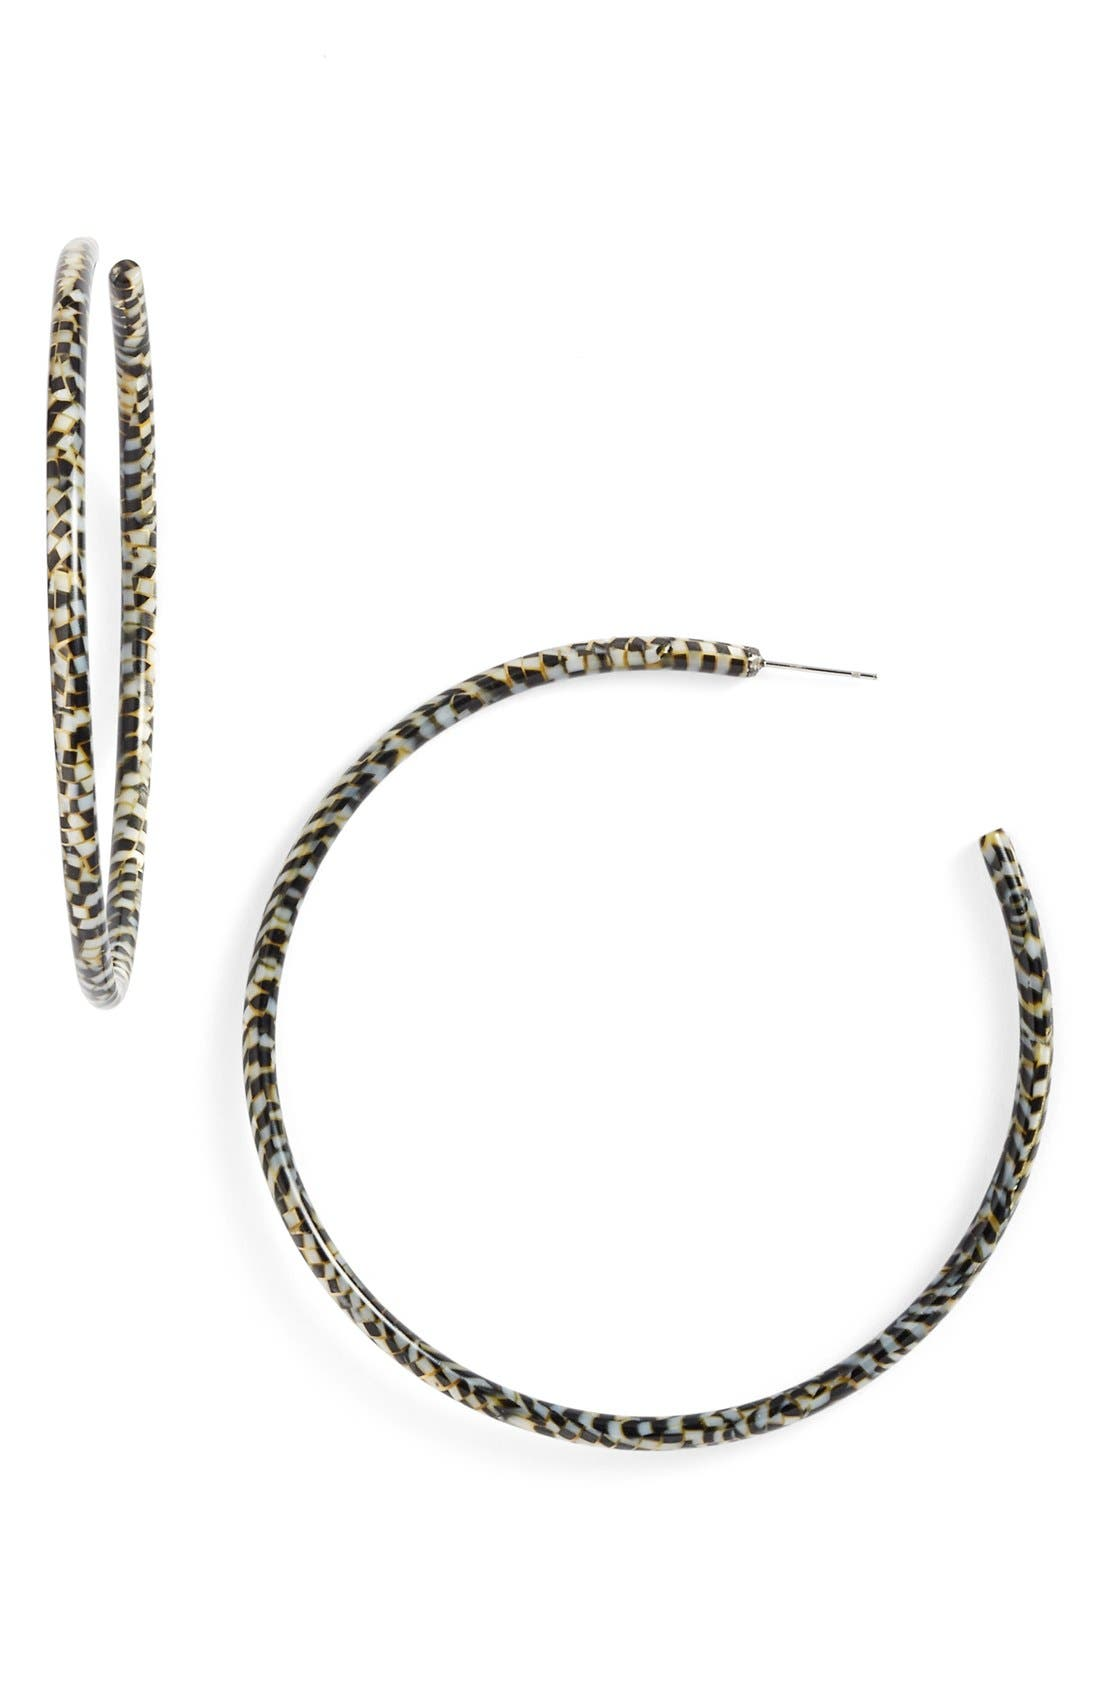 L. ERICKSON L Erickson Jumbo Hoop Earrings